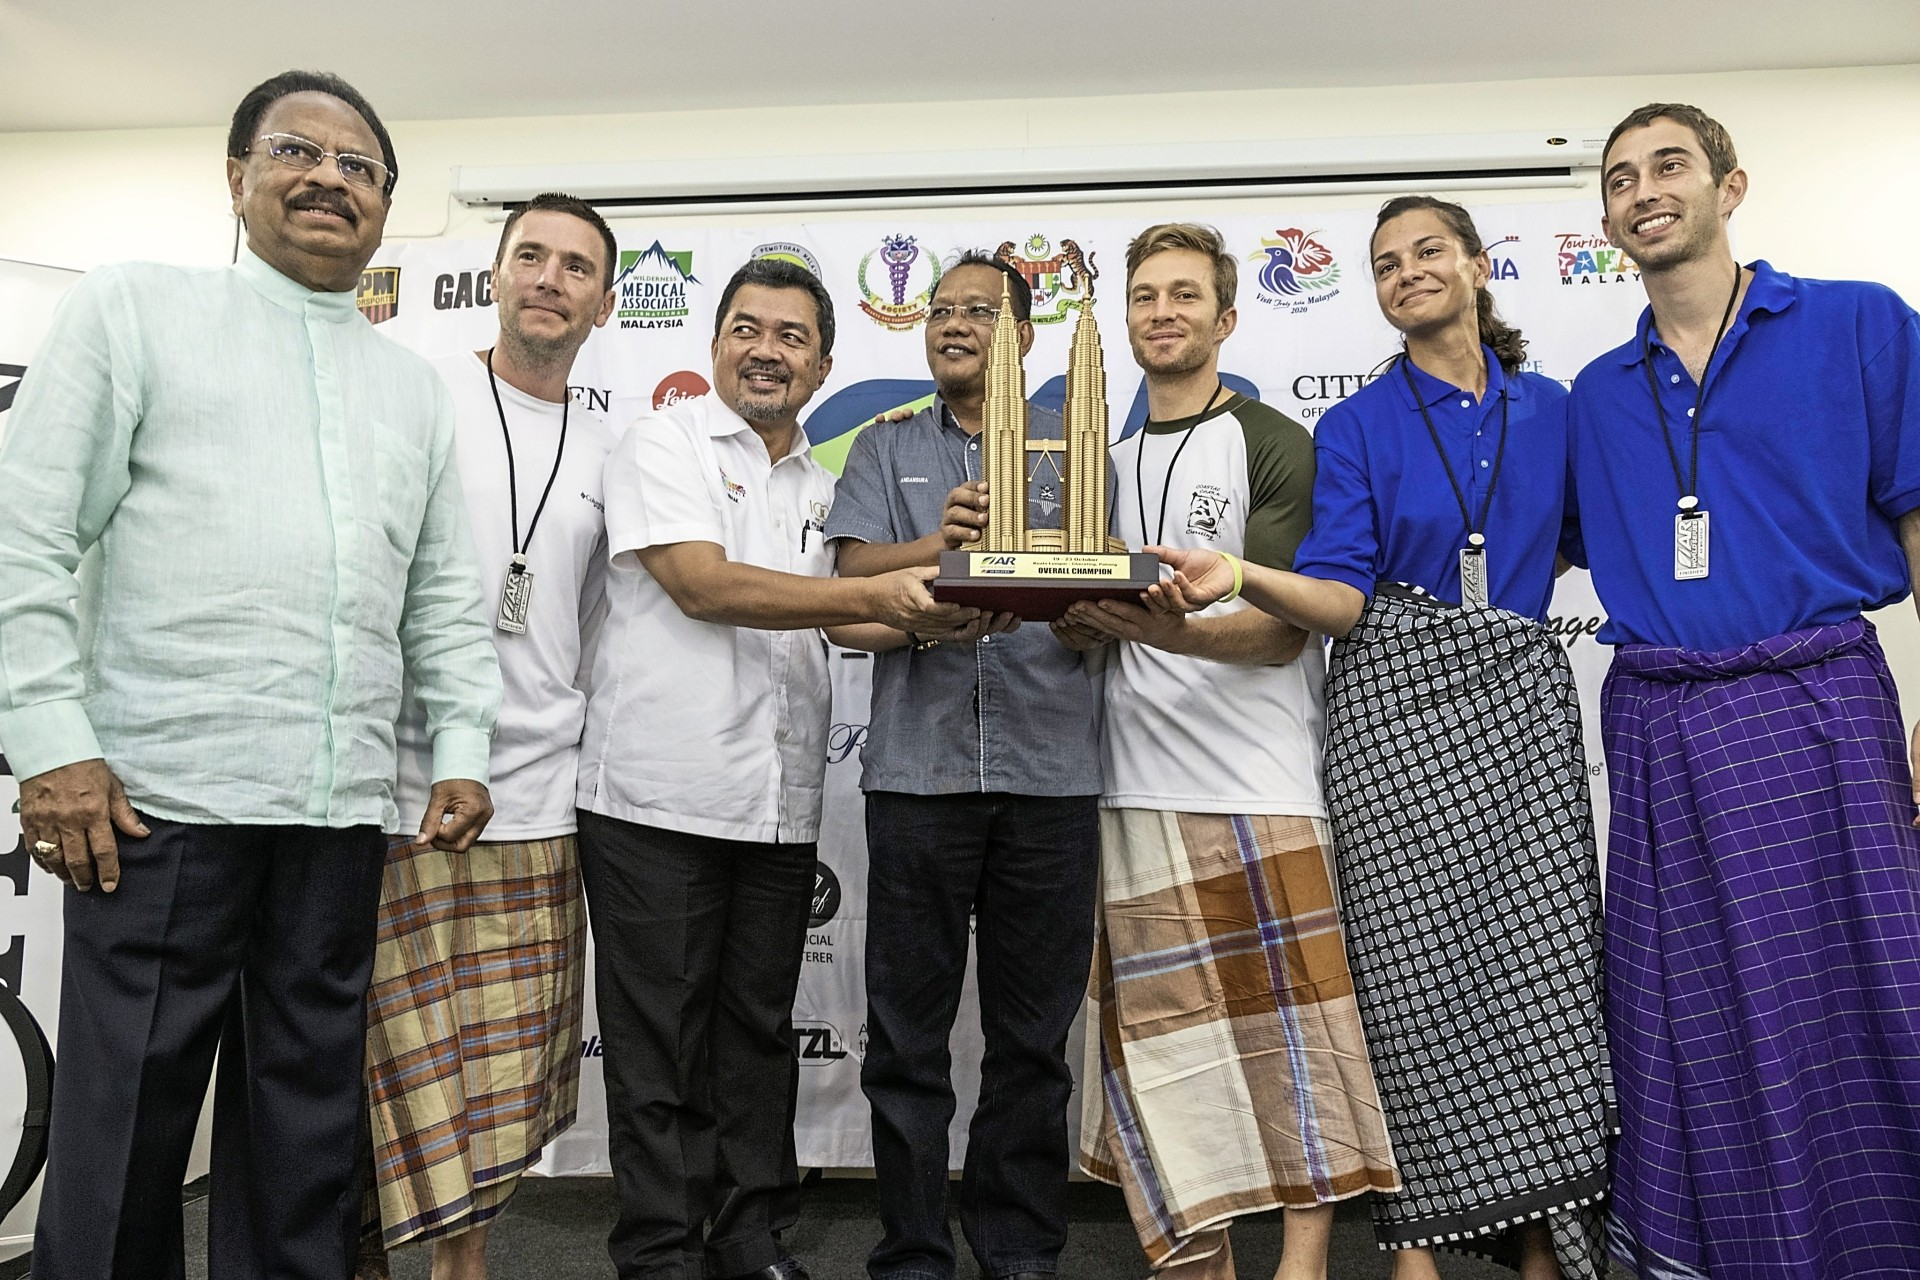 Dr Mohamed Mydin (left), Tourism Pahang general manager Datuk Ishak Mokhtar (third from left) and Beserah assemblyman Andansura Rabu (centre) presenting the winning trophy to members of Team Altitude of the United States, who were clad in sarongs.